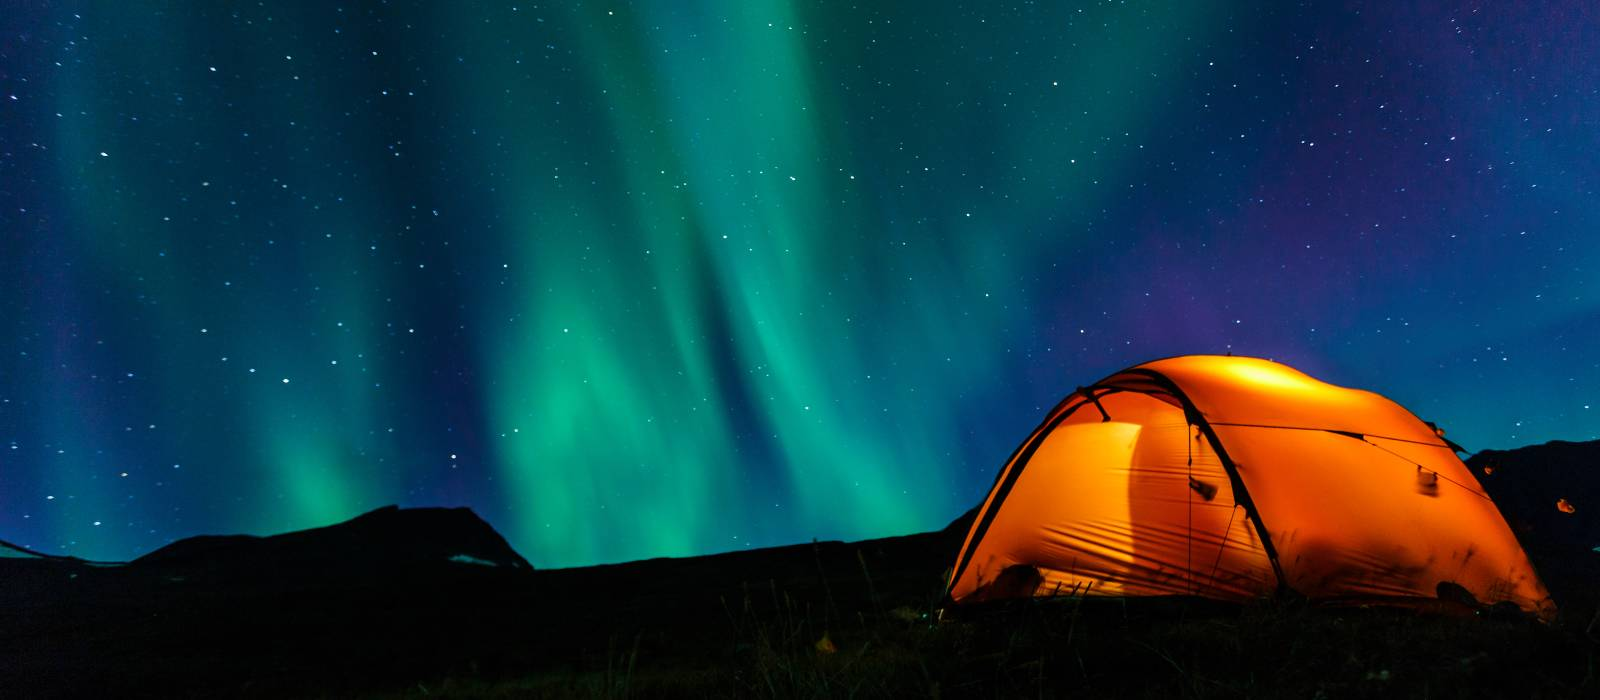 Tent and northern lights